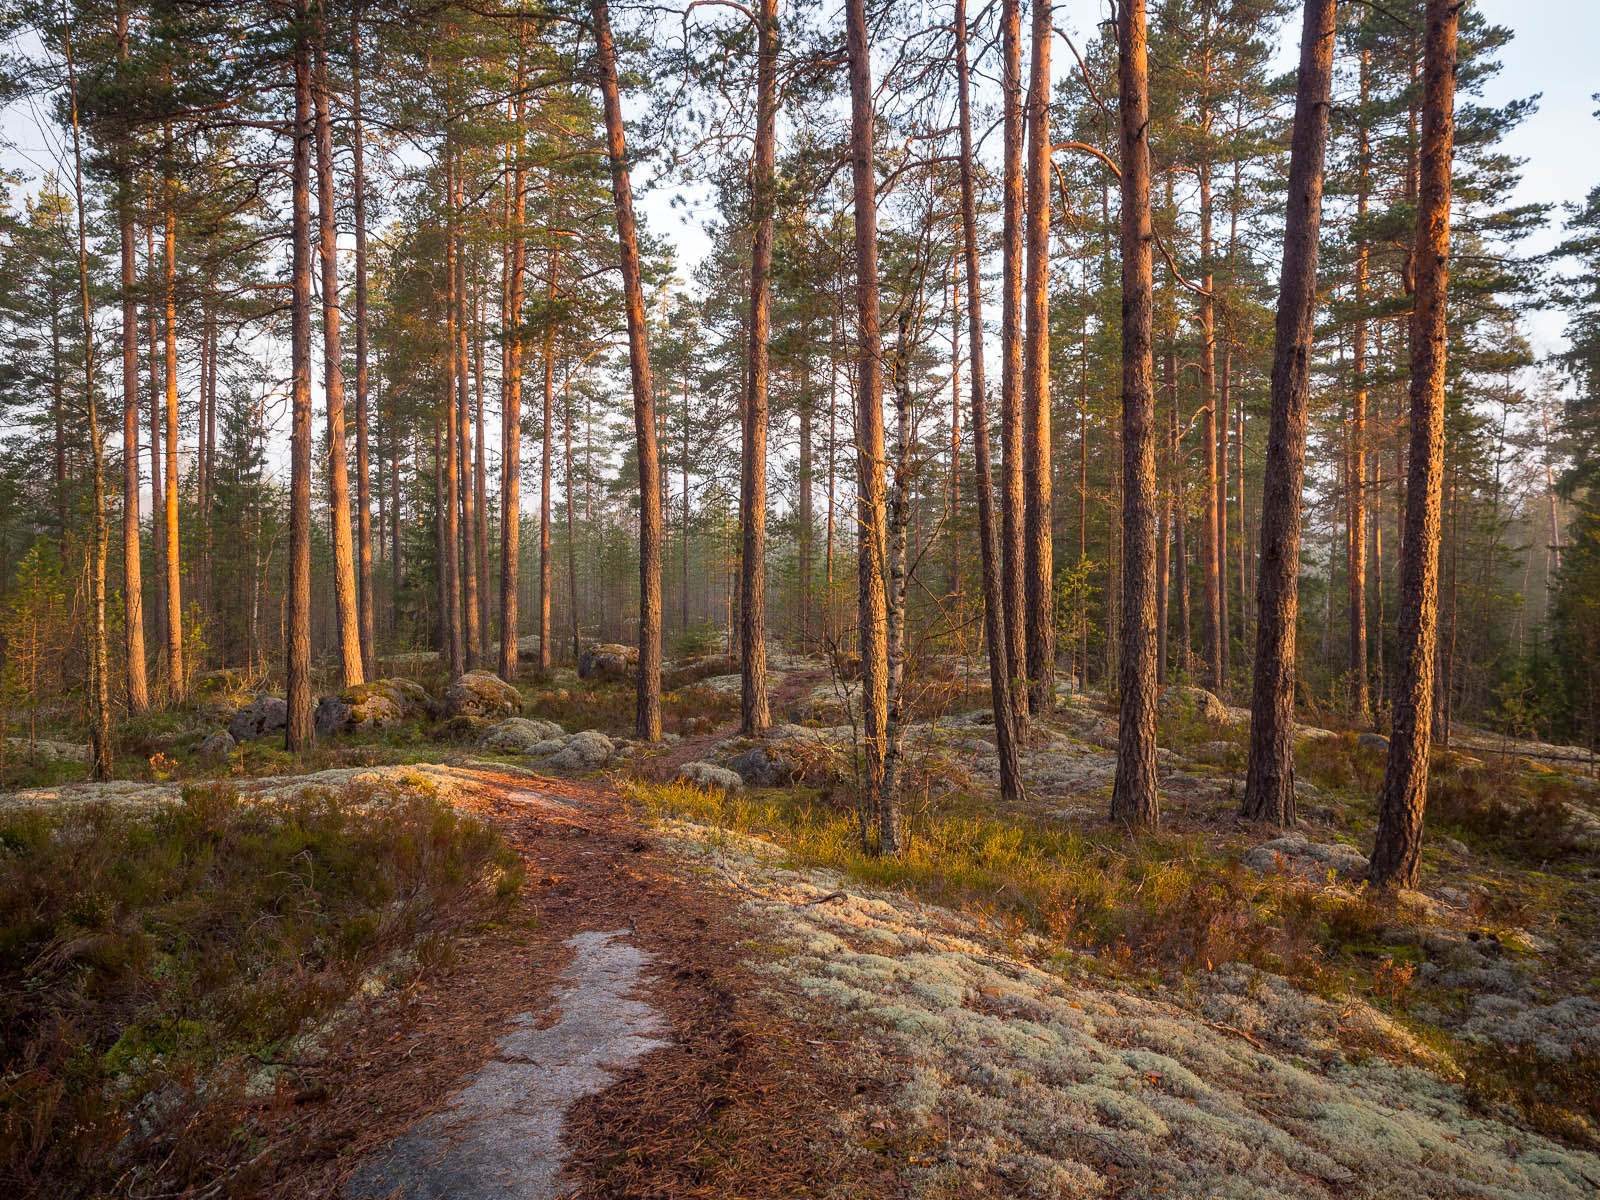 Nuuksio National Park in spring. Trails are free of snow in April. Nature near Helsinki, Finland.